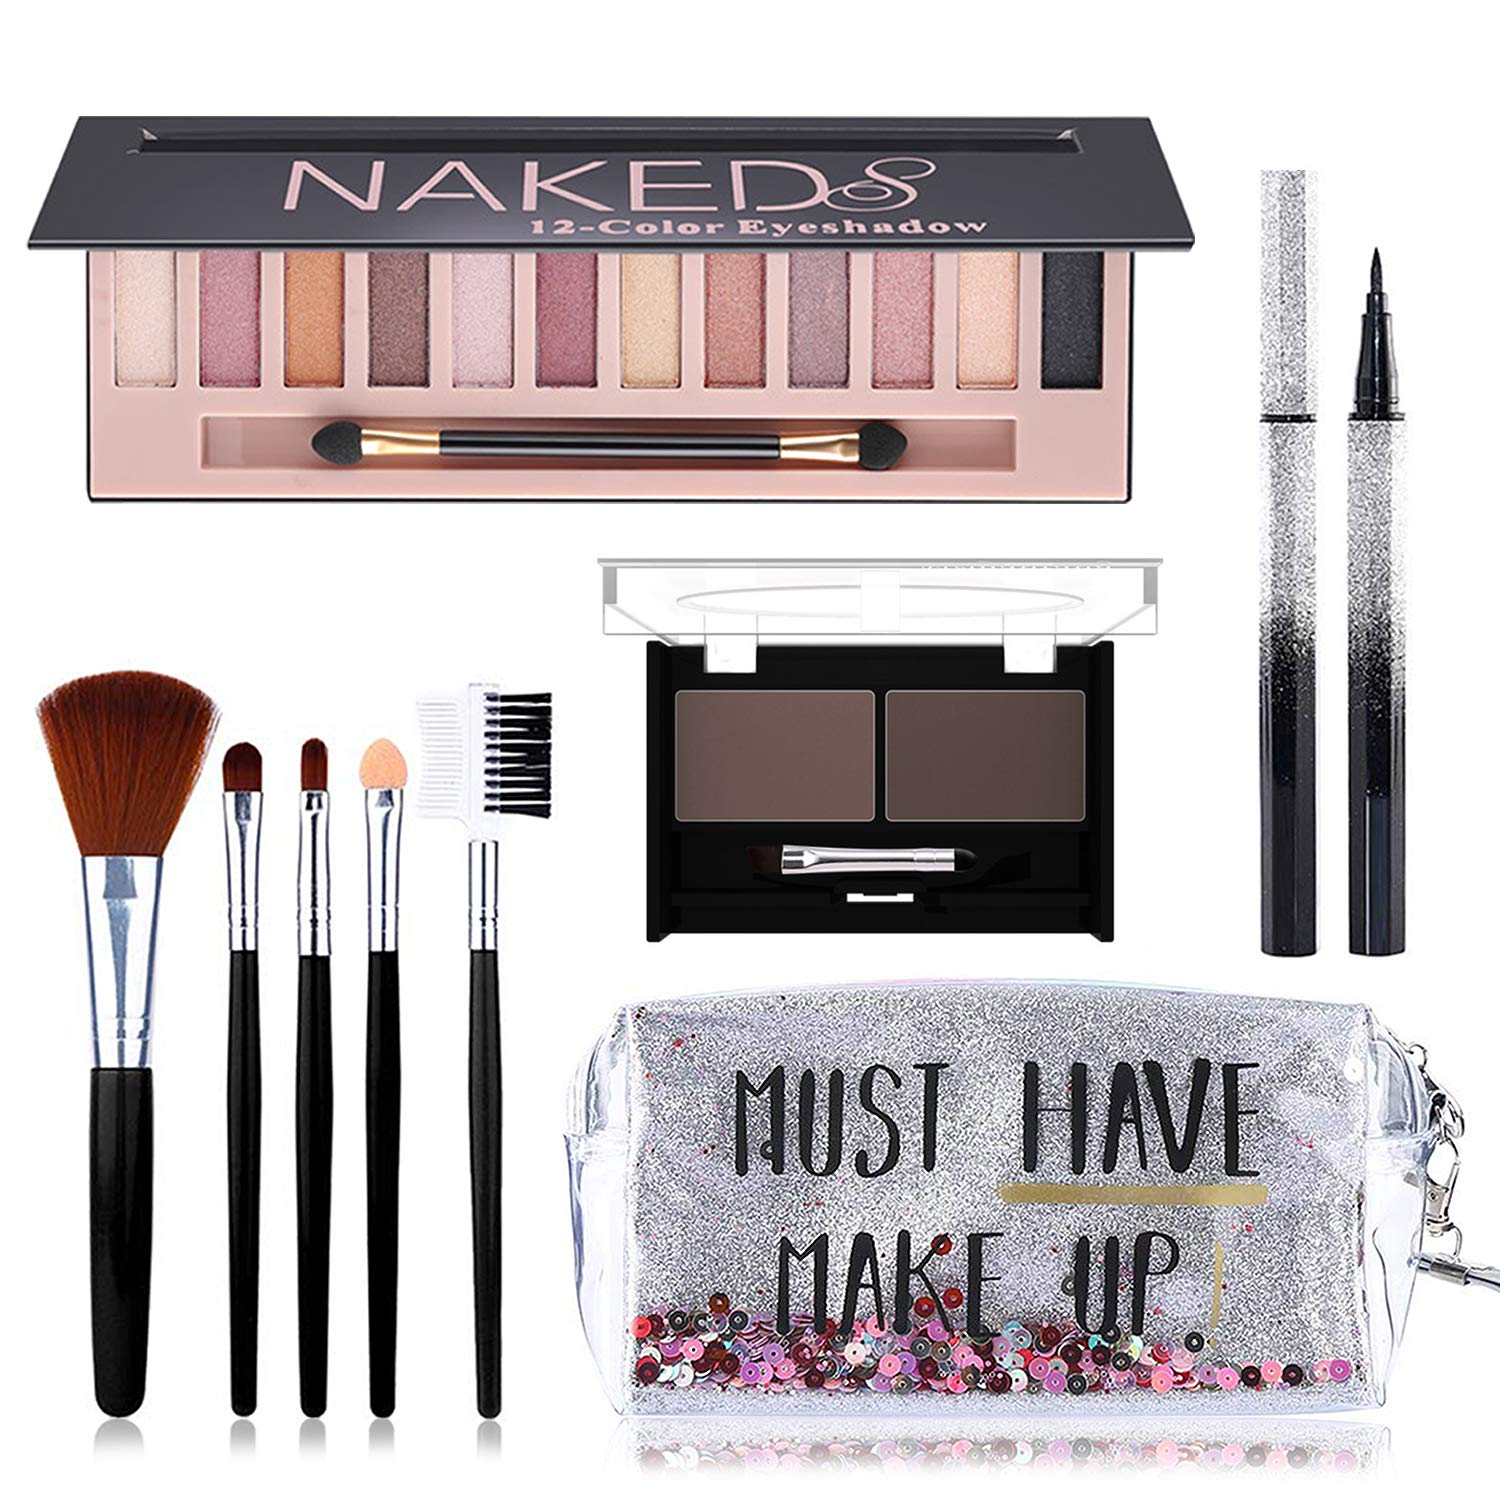 All in One Makeup Kit, Includes 12 Colors Naked Eyeshadow Palette, 5Pcs Makeup Brushes, Waterproof Eyeliner Pencils, Eyebrow Powder Duo and Quicksand Cosmetic Bag, Gift Set for Women, Girls & Teens